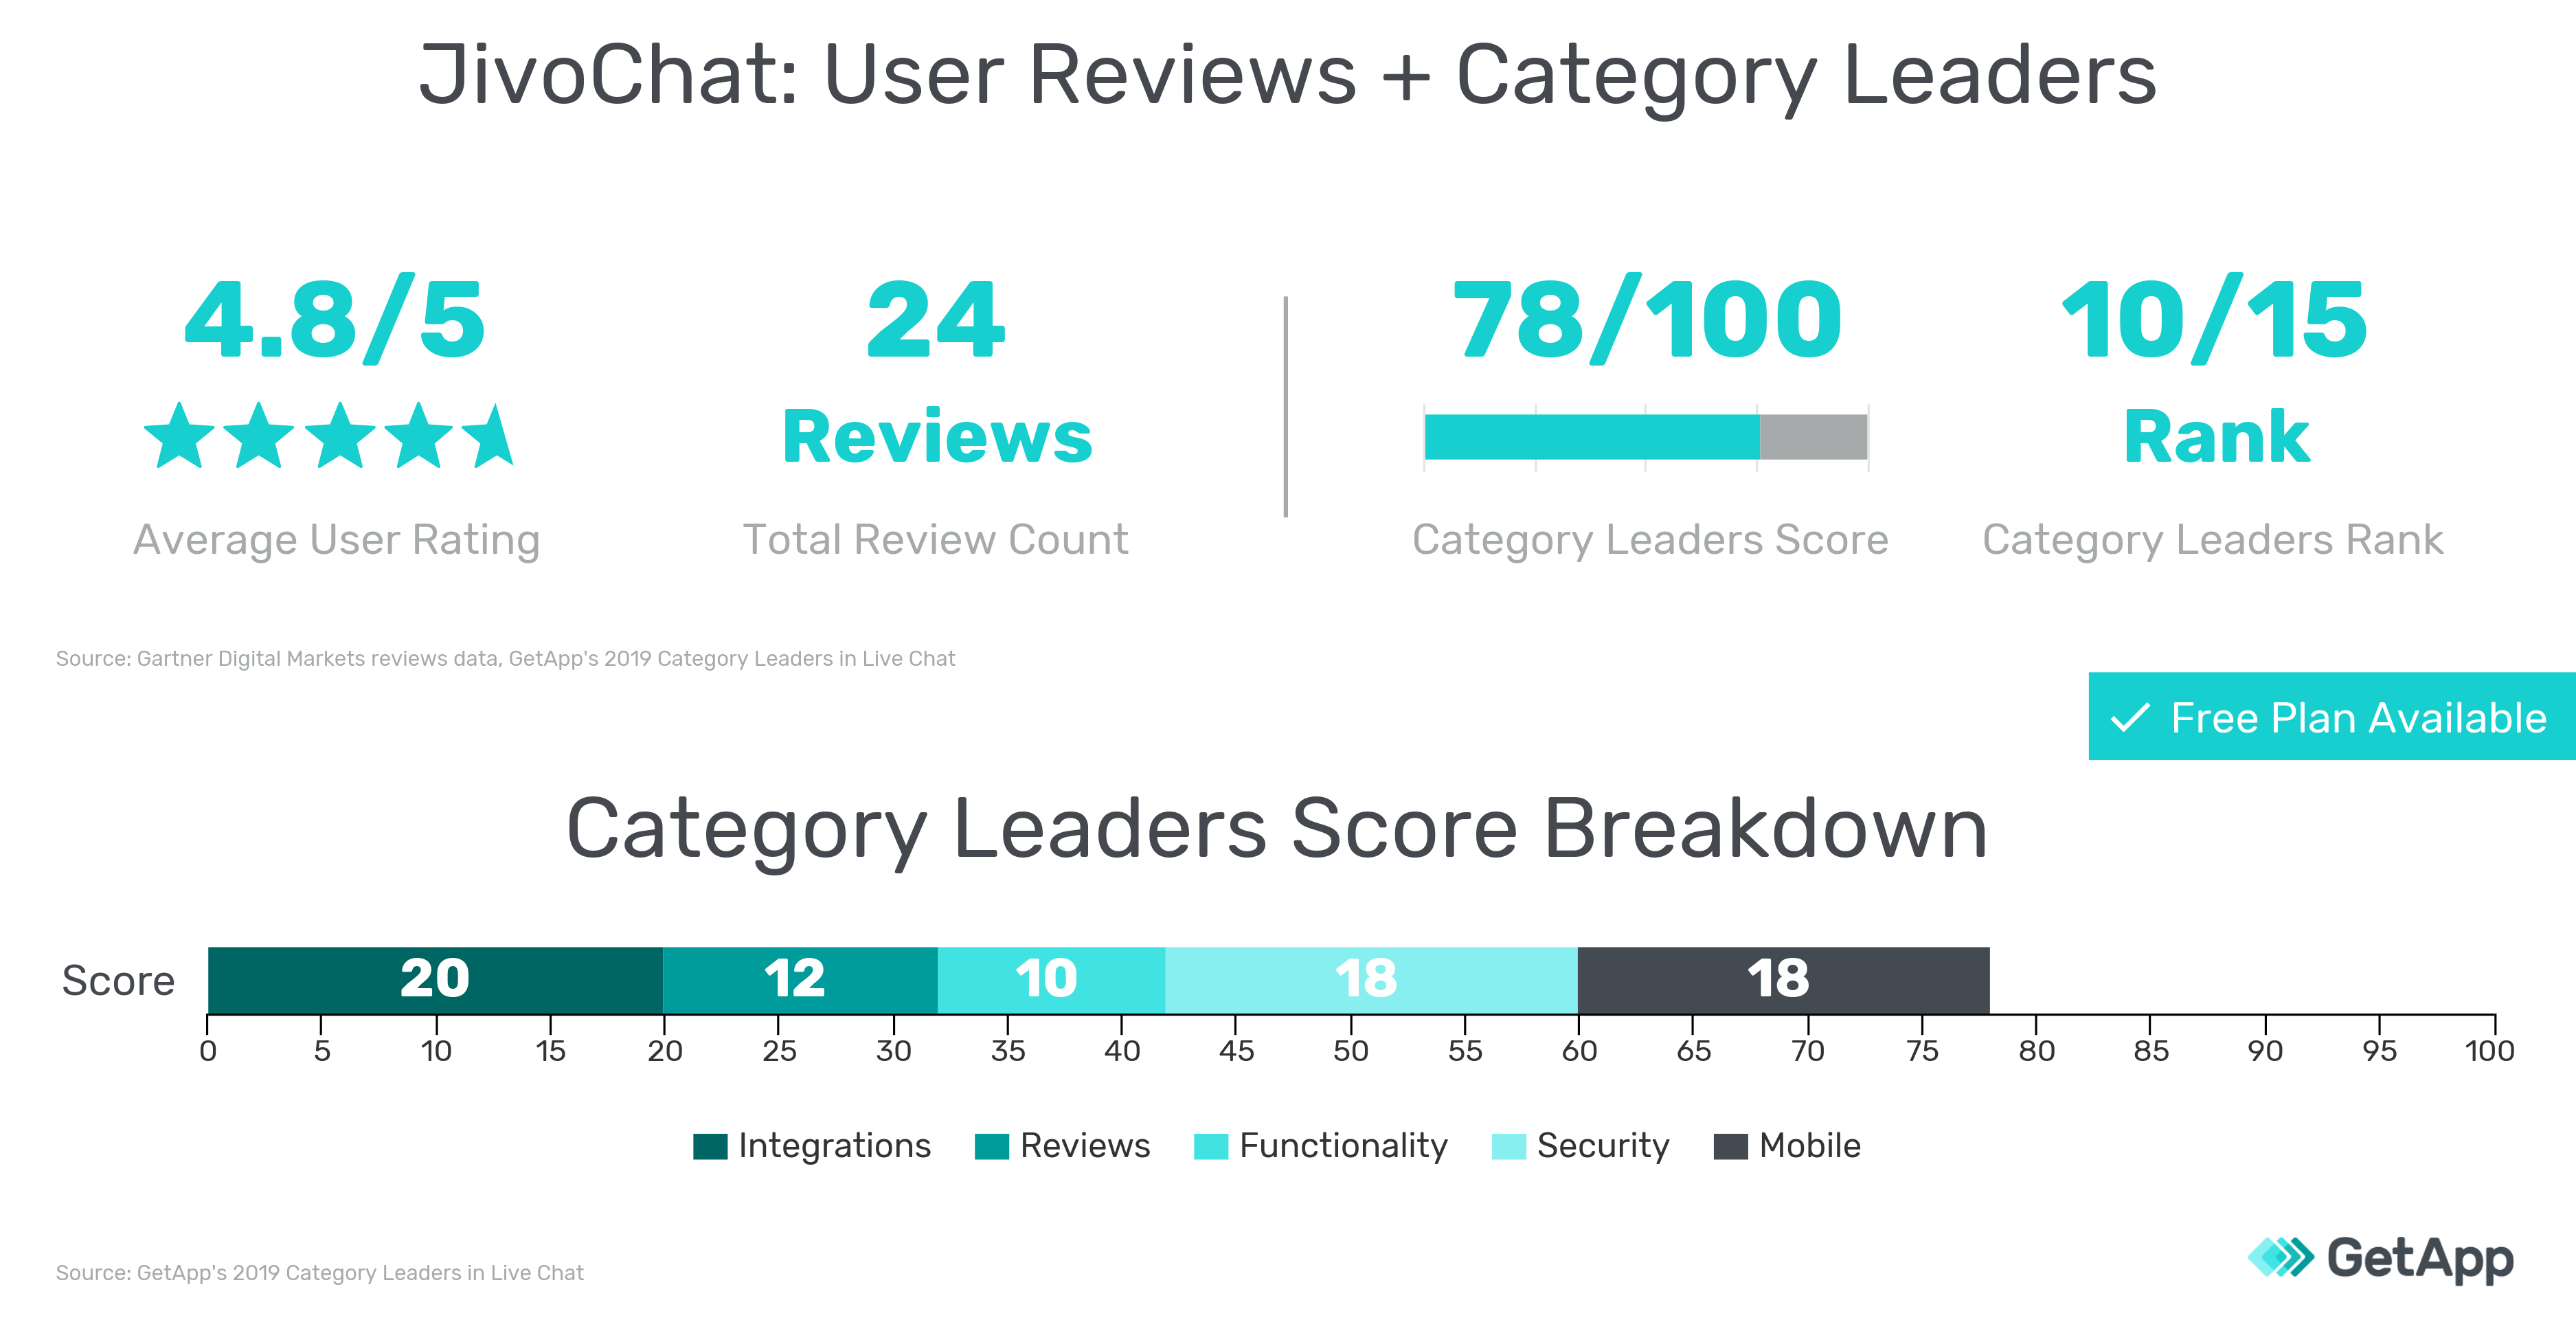 User reviews information and 2019 Category Leaders scores for JivoChat graphic